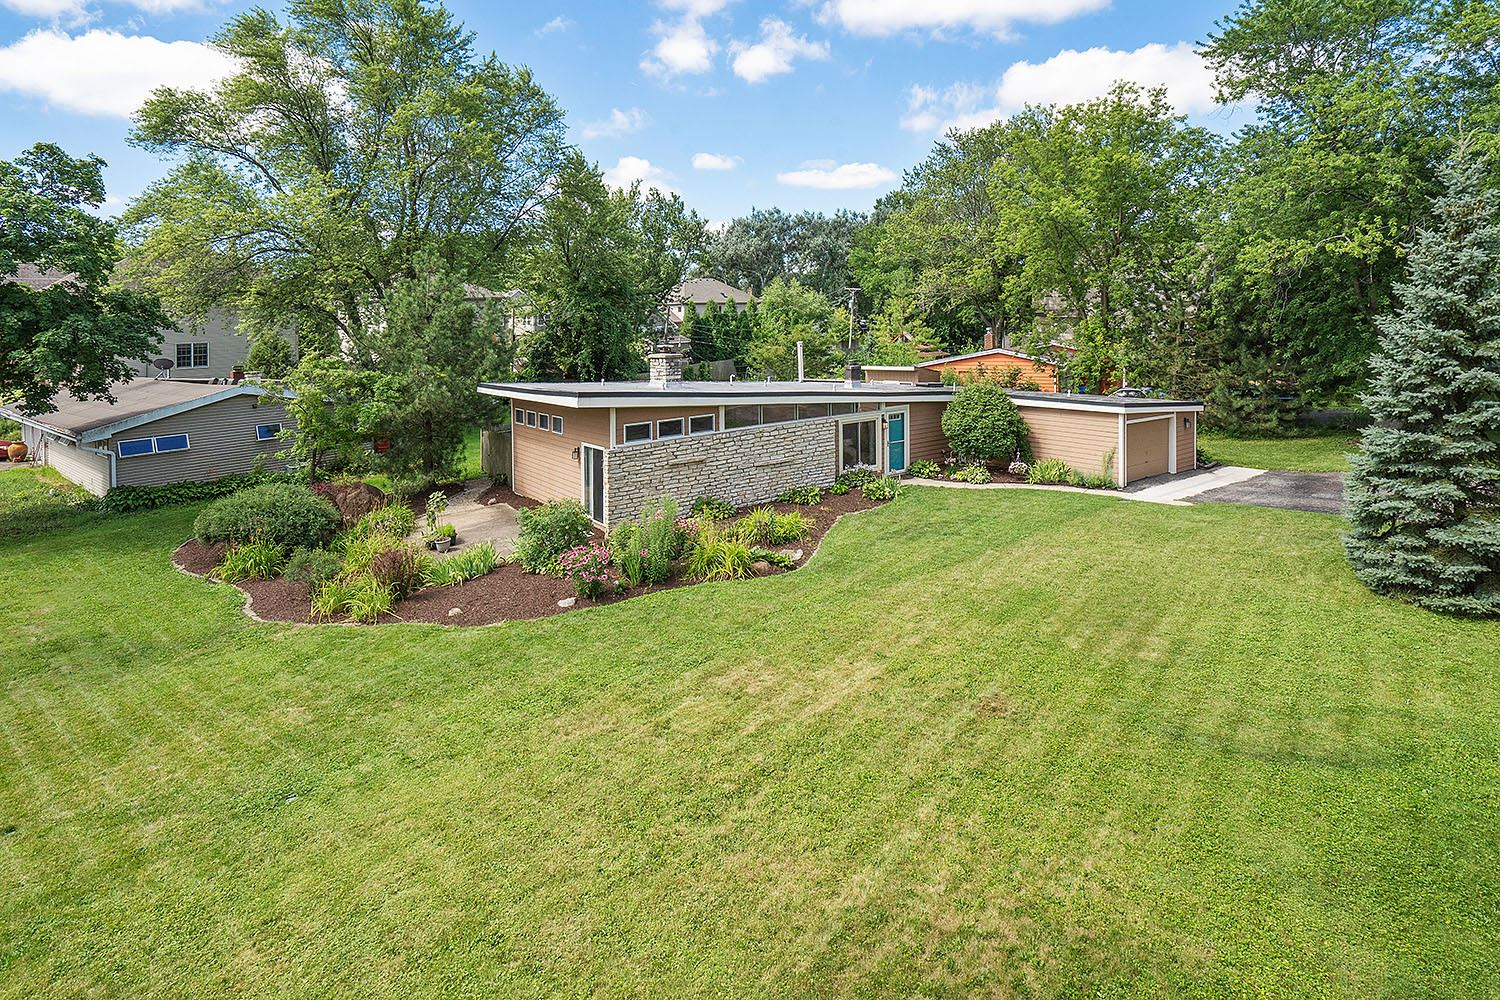 22W525 Cherry Lane, Glen Ellyn, IL 60137 - #: 10795985